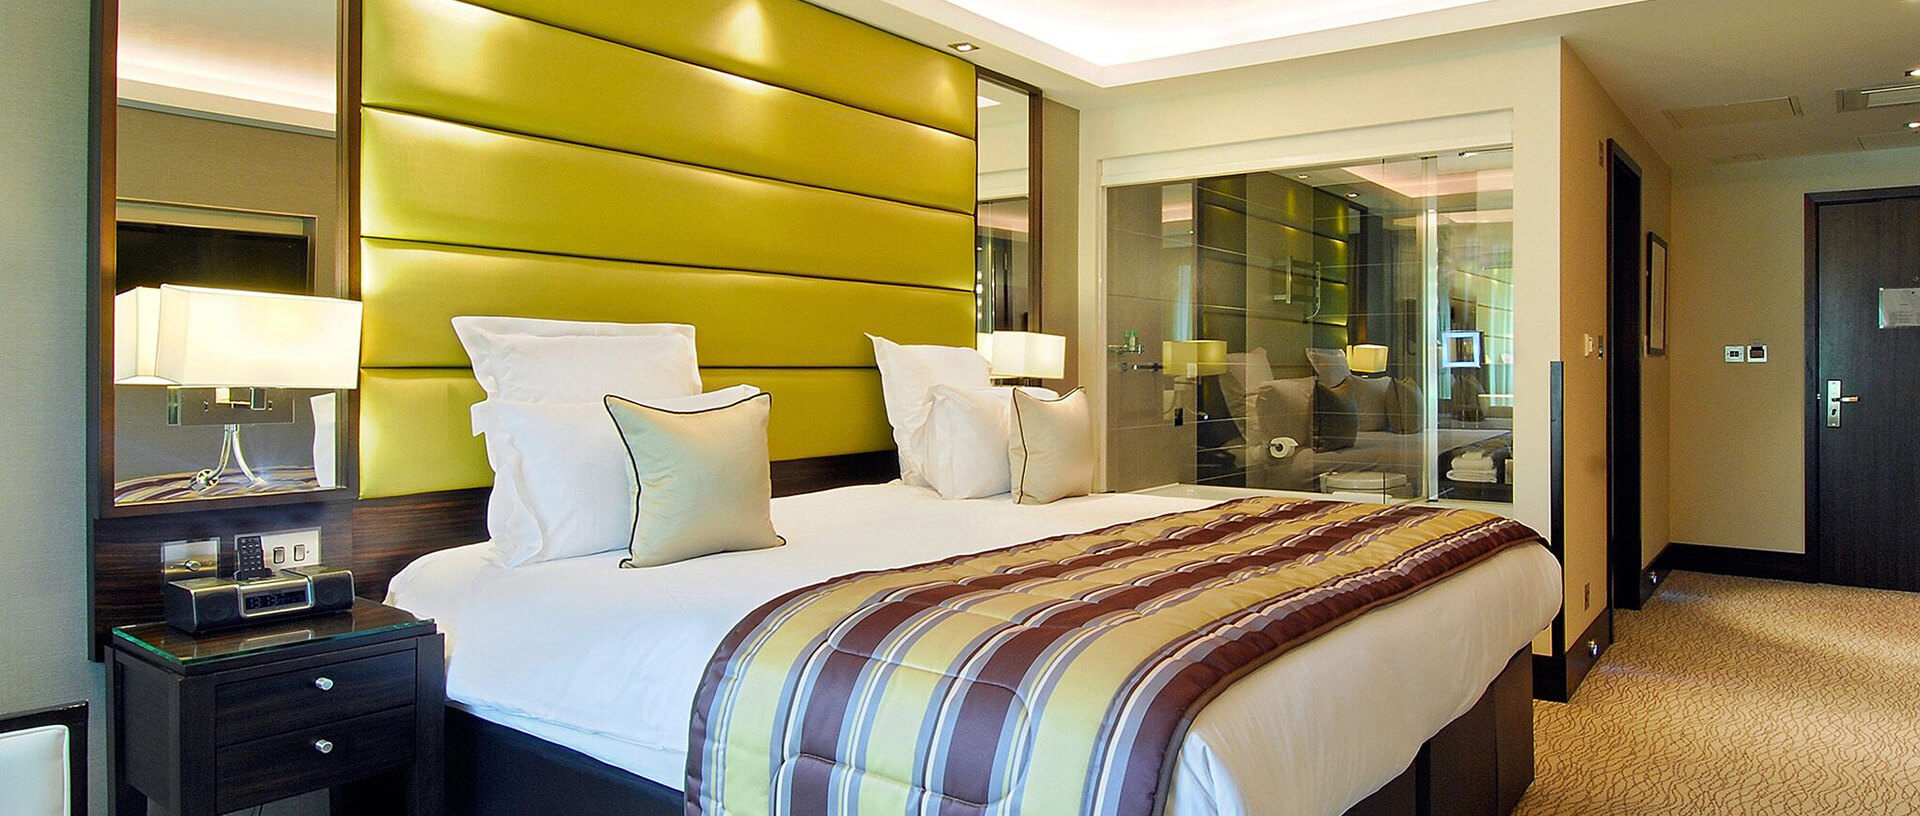 The Montcalm Club at The Montcalm Marble Arch